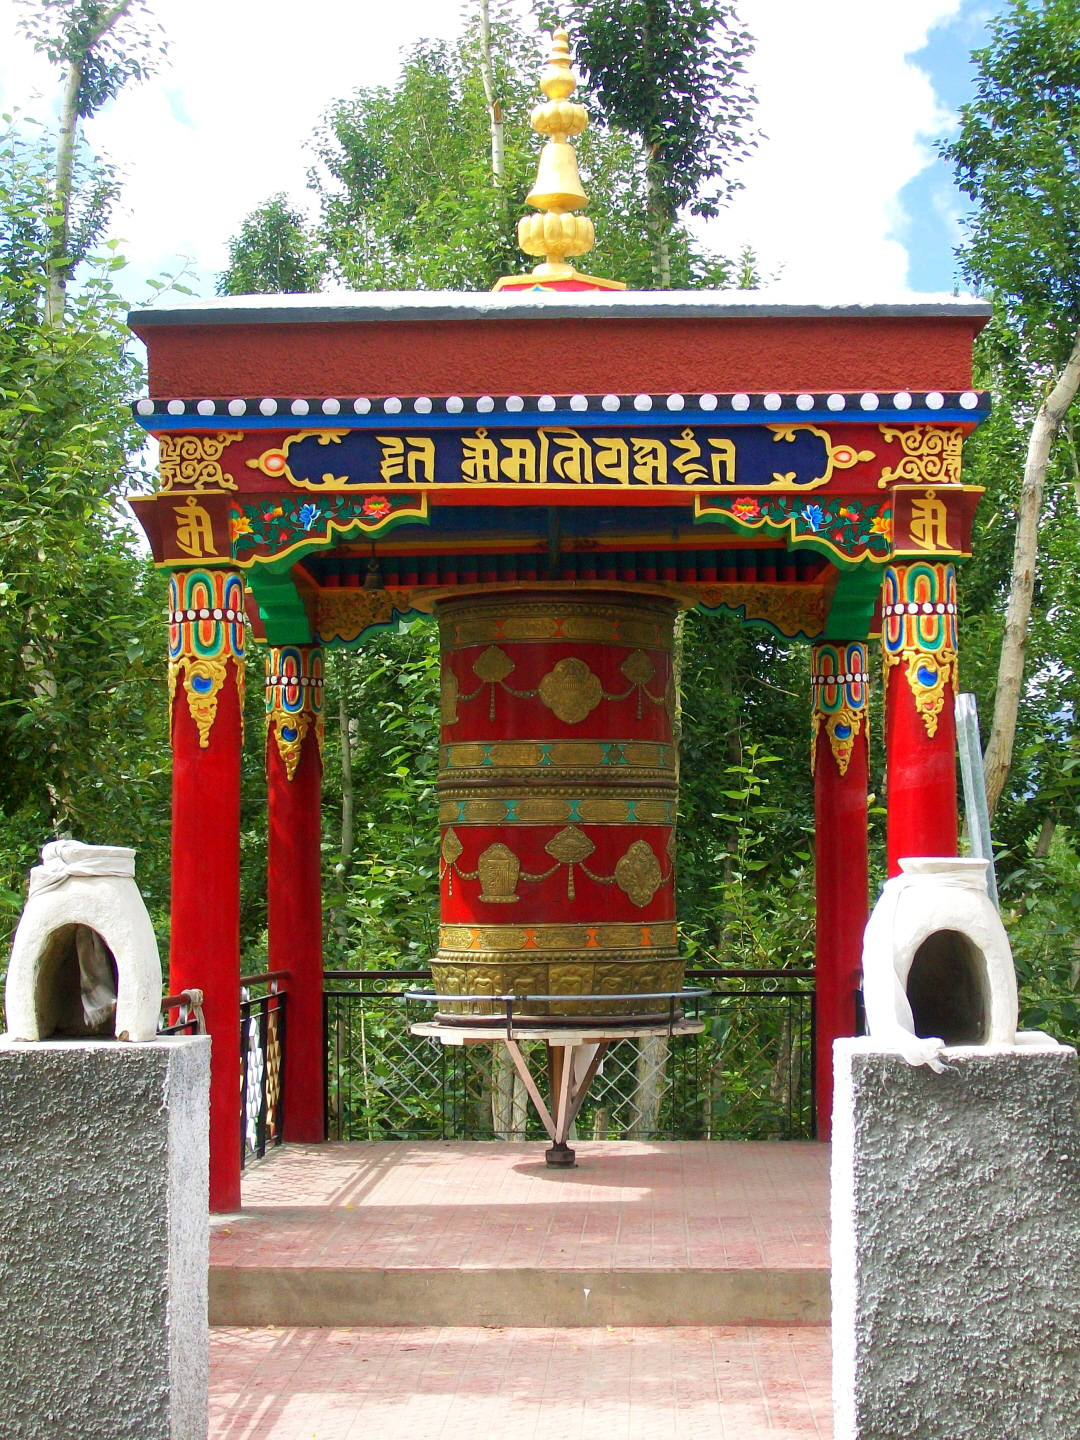 Buddhist Prayer Wheel - Prayers are Printed Inside, Turning It brings Peace